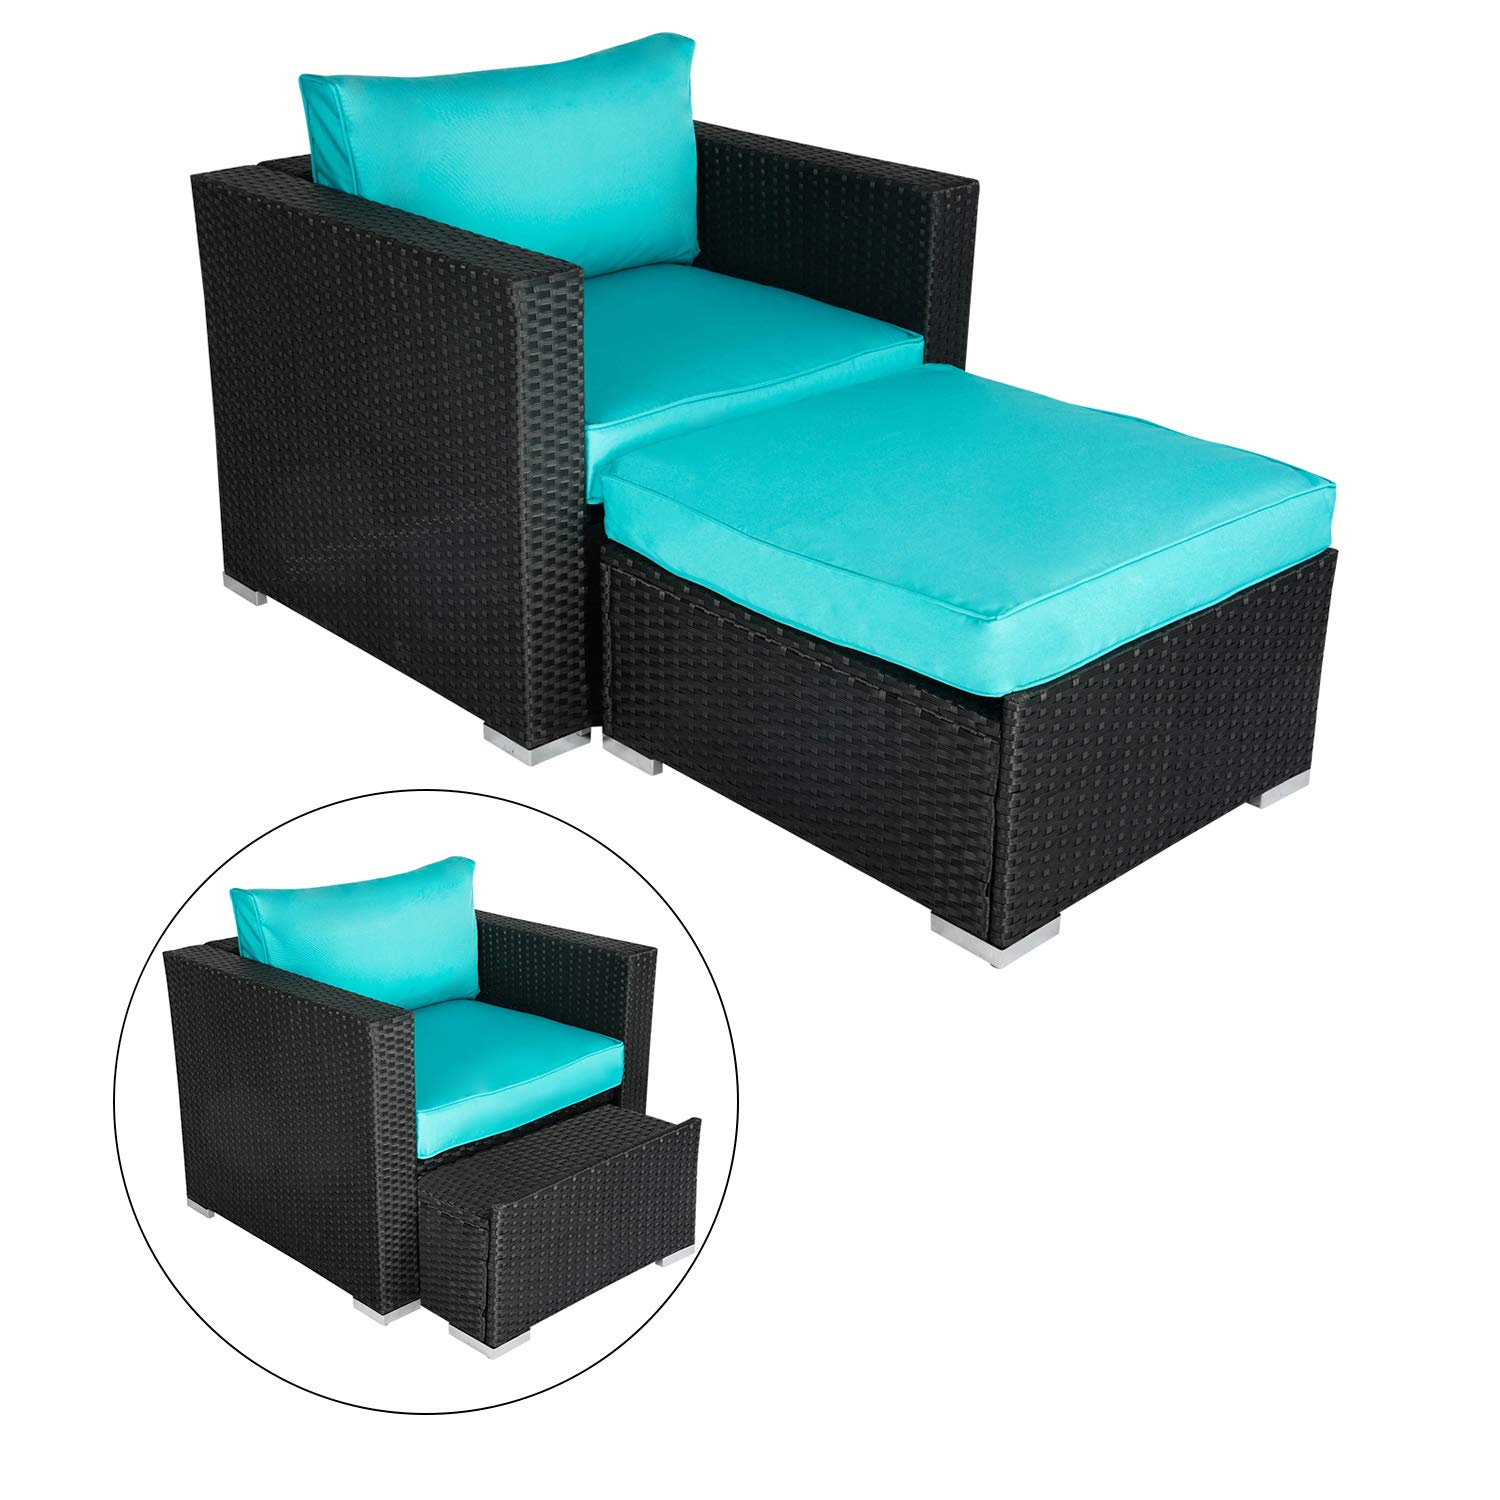 Kinsunny Wicker Furniture Single Chair with Ottoman, All Weather Black PE Wicker Additional Seats for Sectional Sofa by Kinsunny